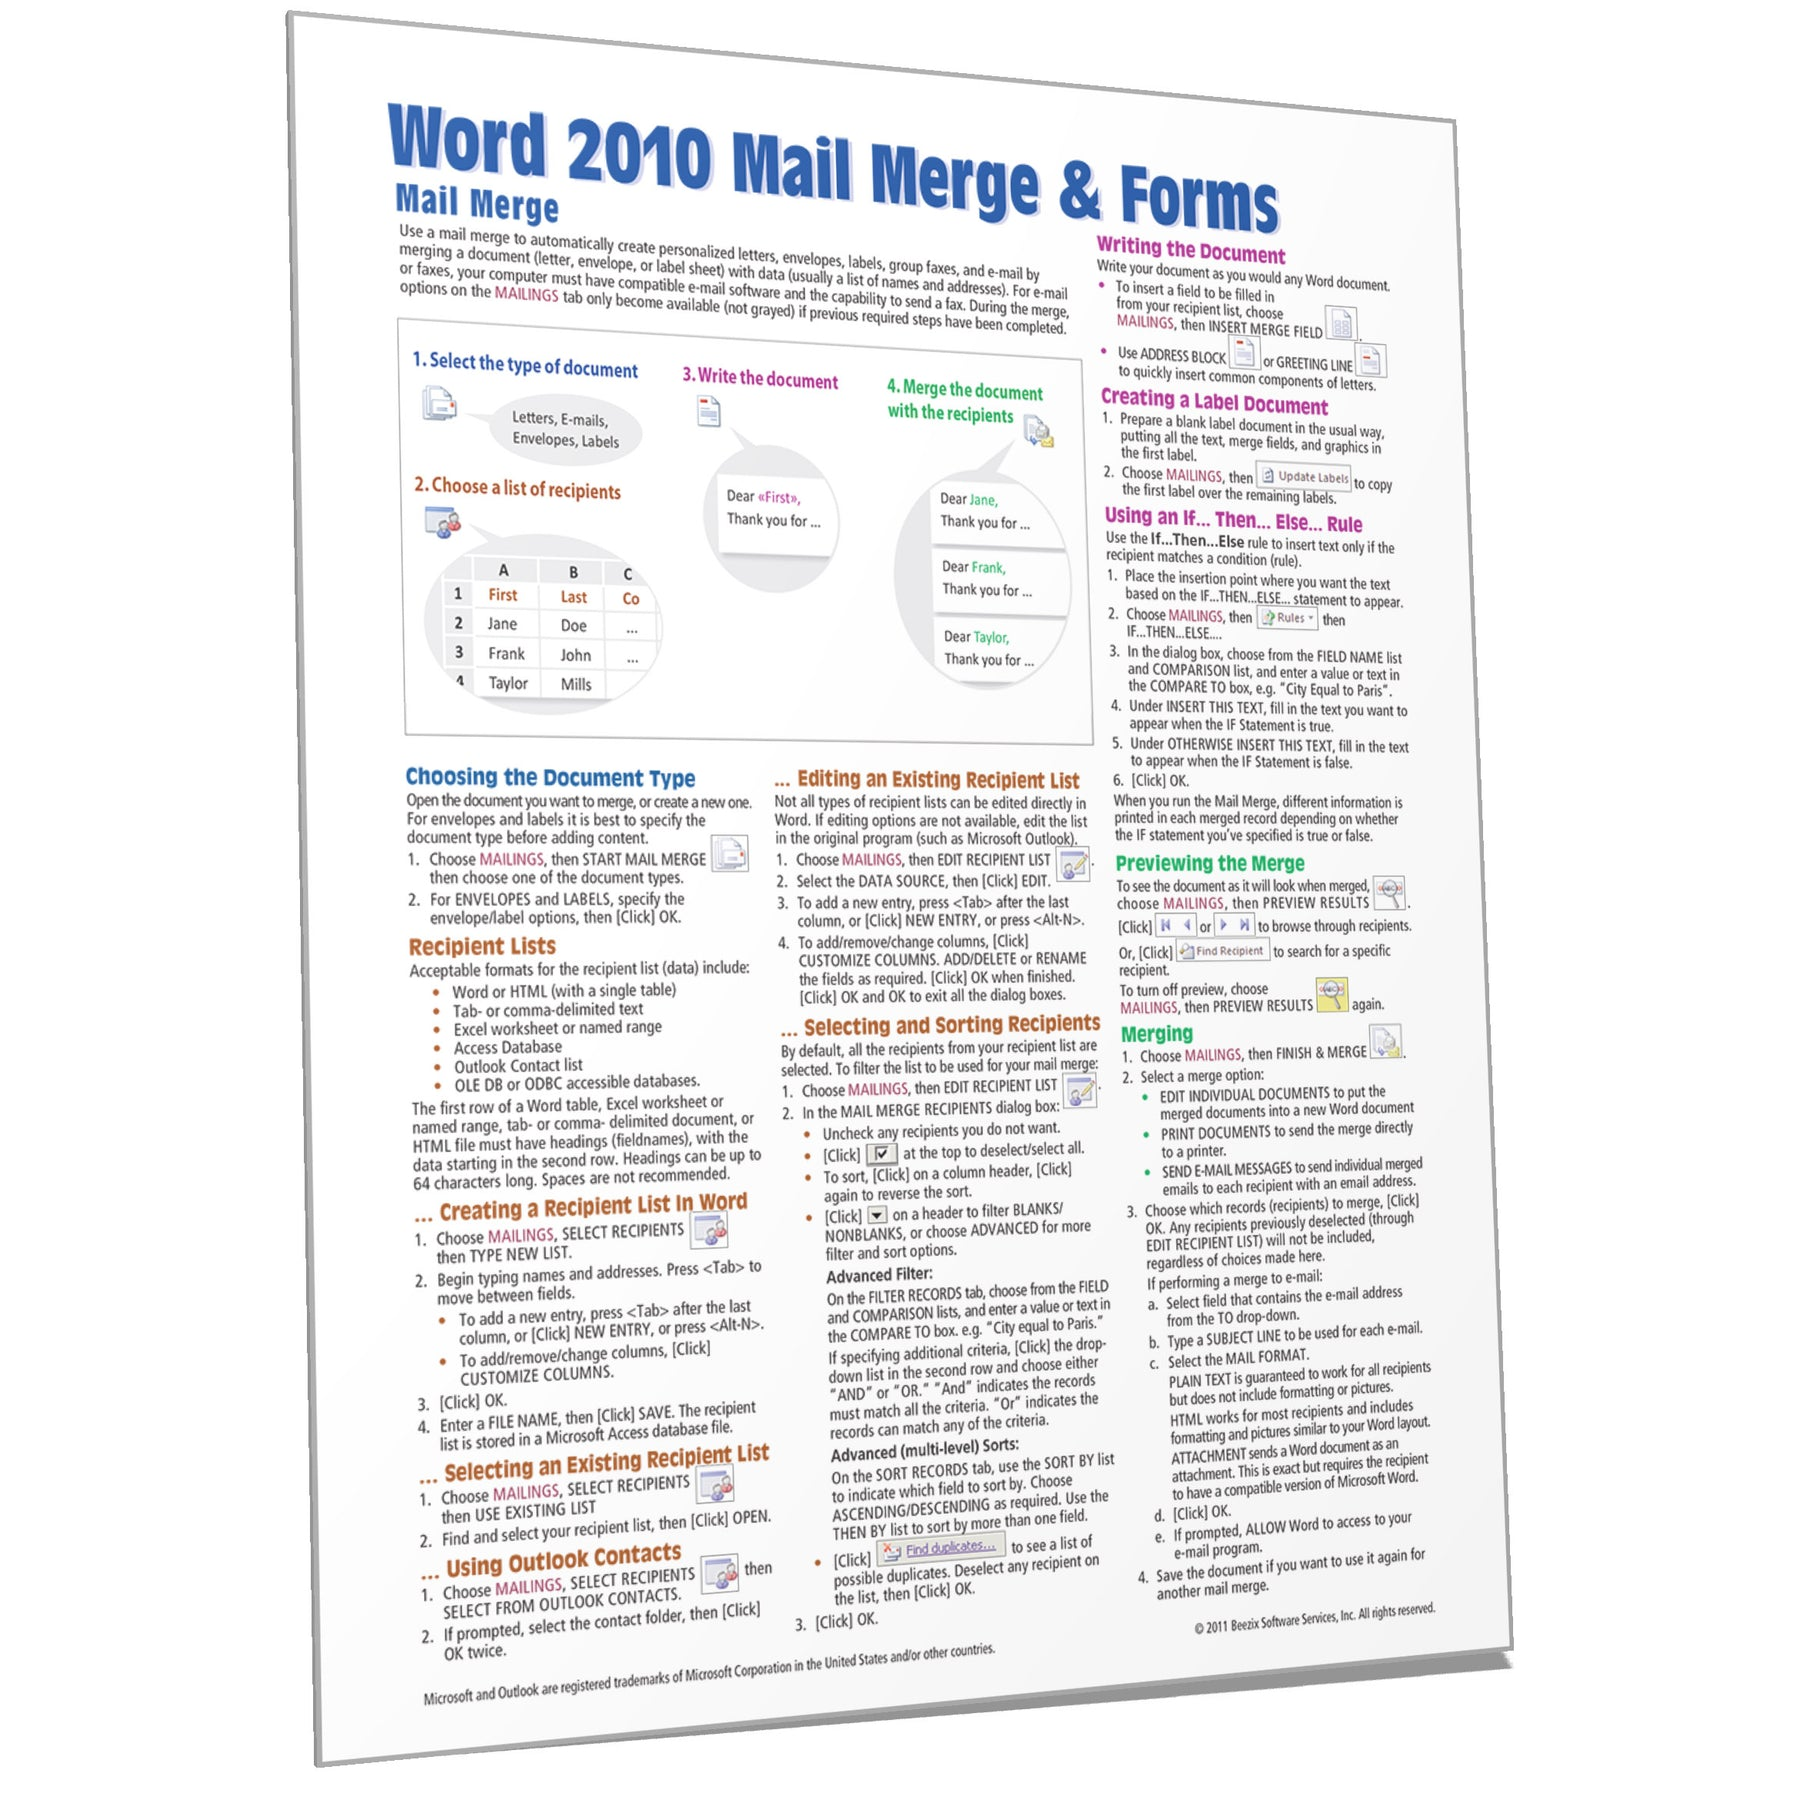 microsoft word 2010 mail merge quick reference guide card beezix